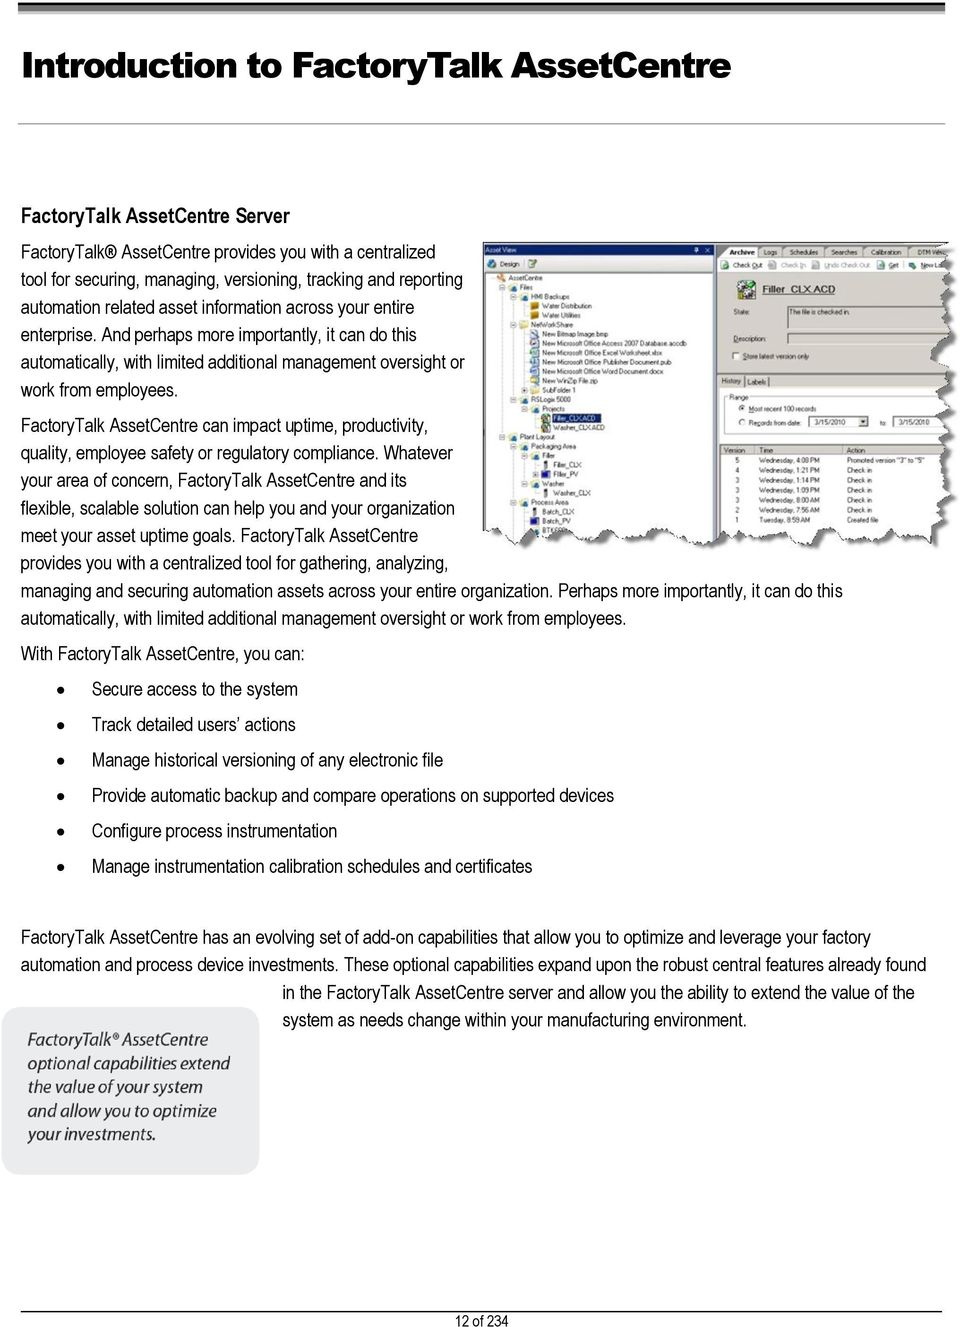 FactoryTalk AssetCentre can impact uptime, productivity, quality, employee safety or regulatory compliance.